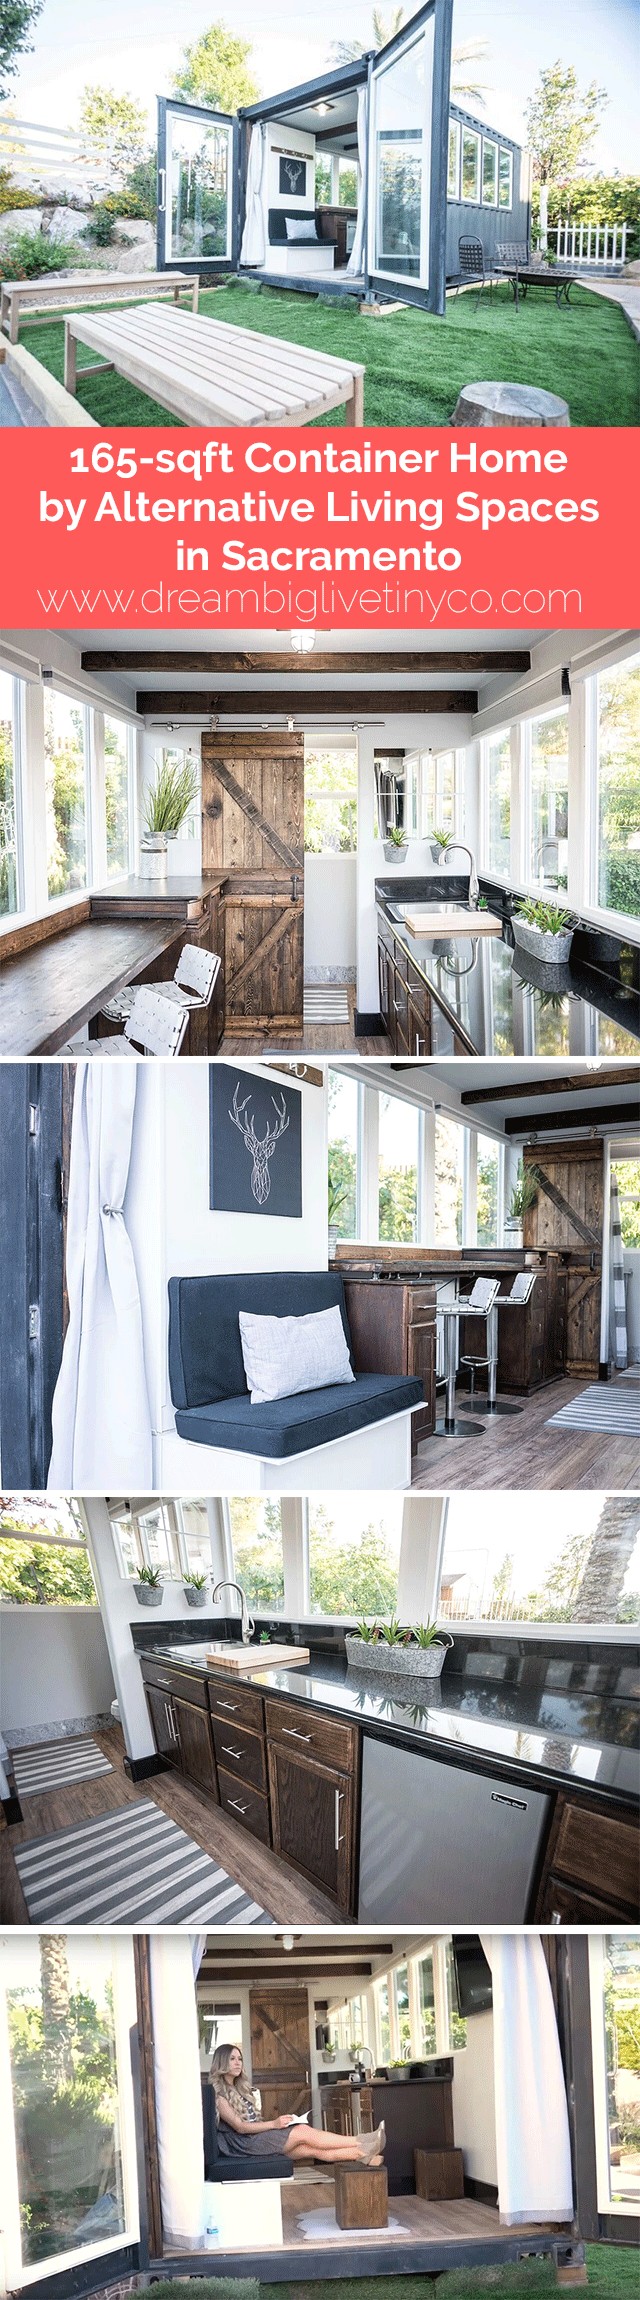 165 sqft container home by alternative living spaces in sacramento rh pinterest com